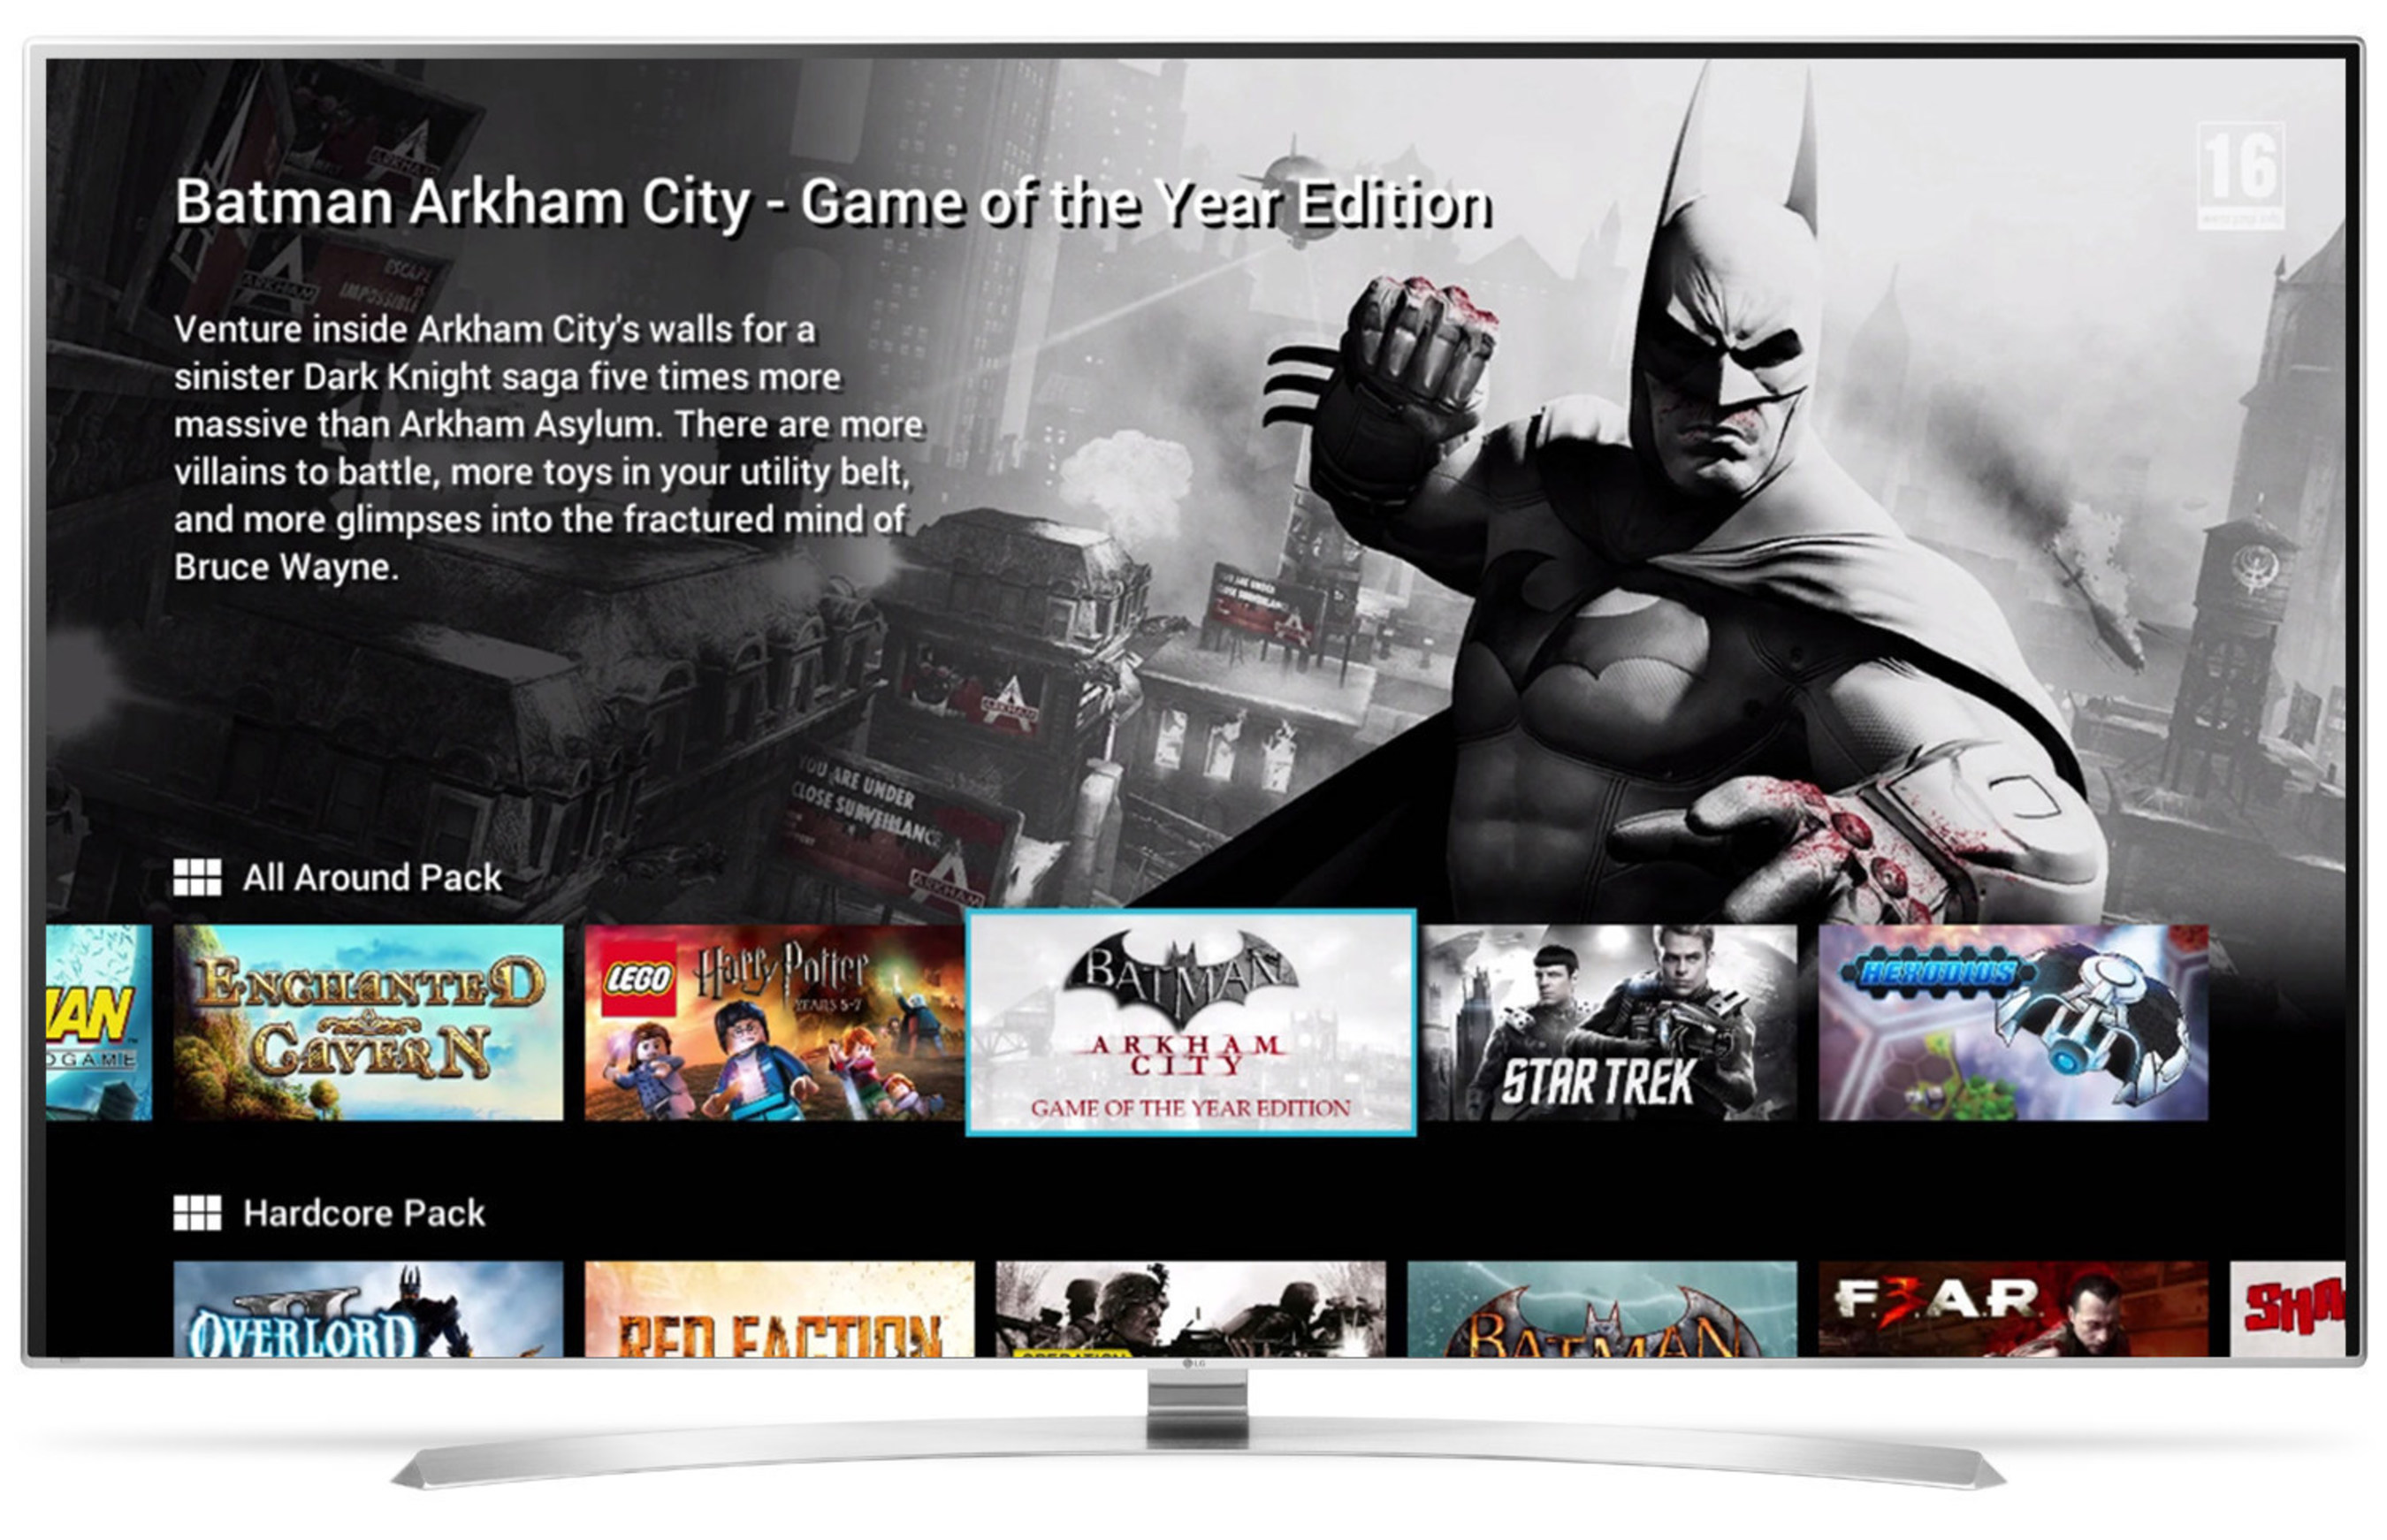 LG Teams Up with GameFly to Bring Video Game Streaming to LG